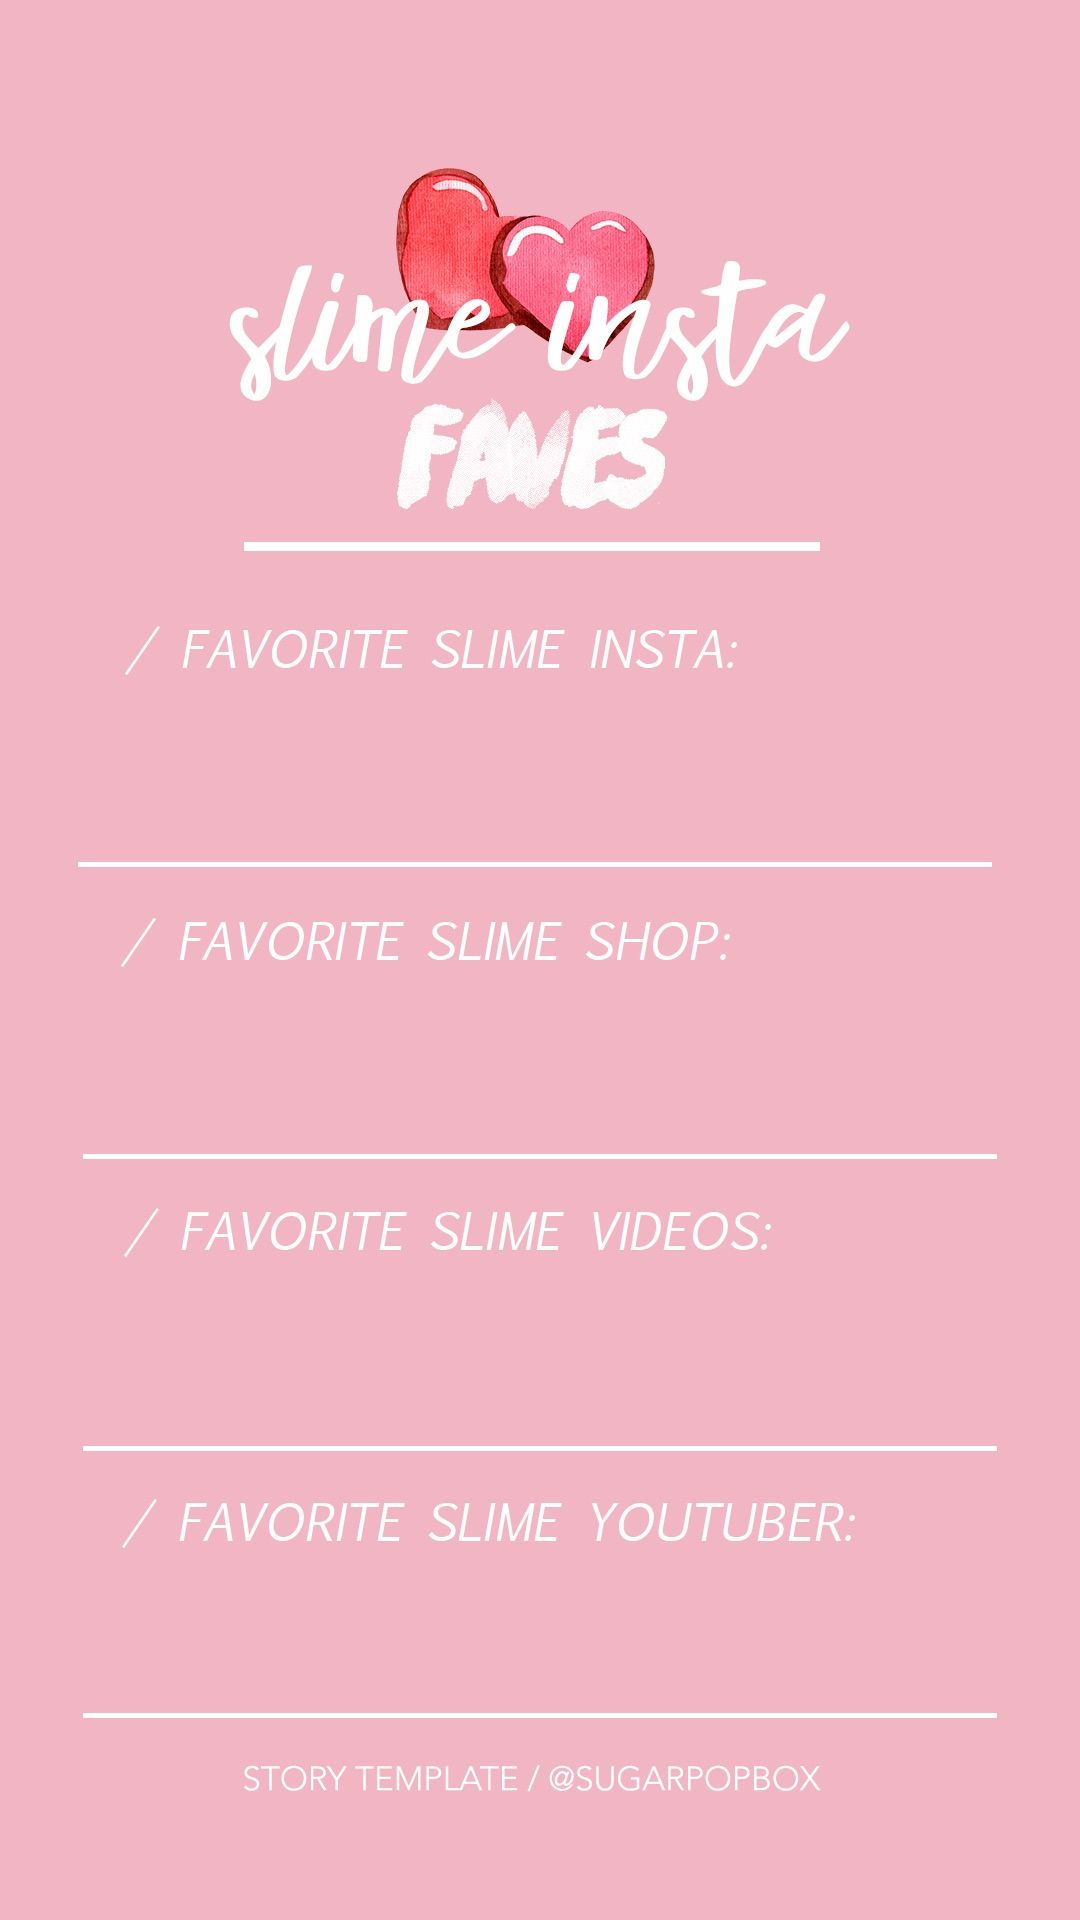 Free Slime Insta Faves Slime Story Template For Instagram Stories